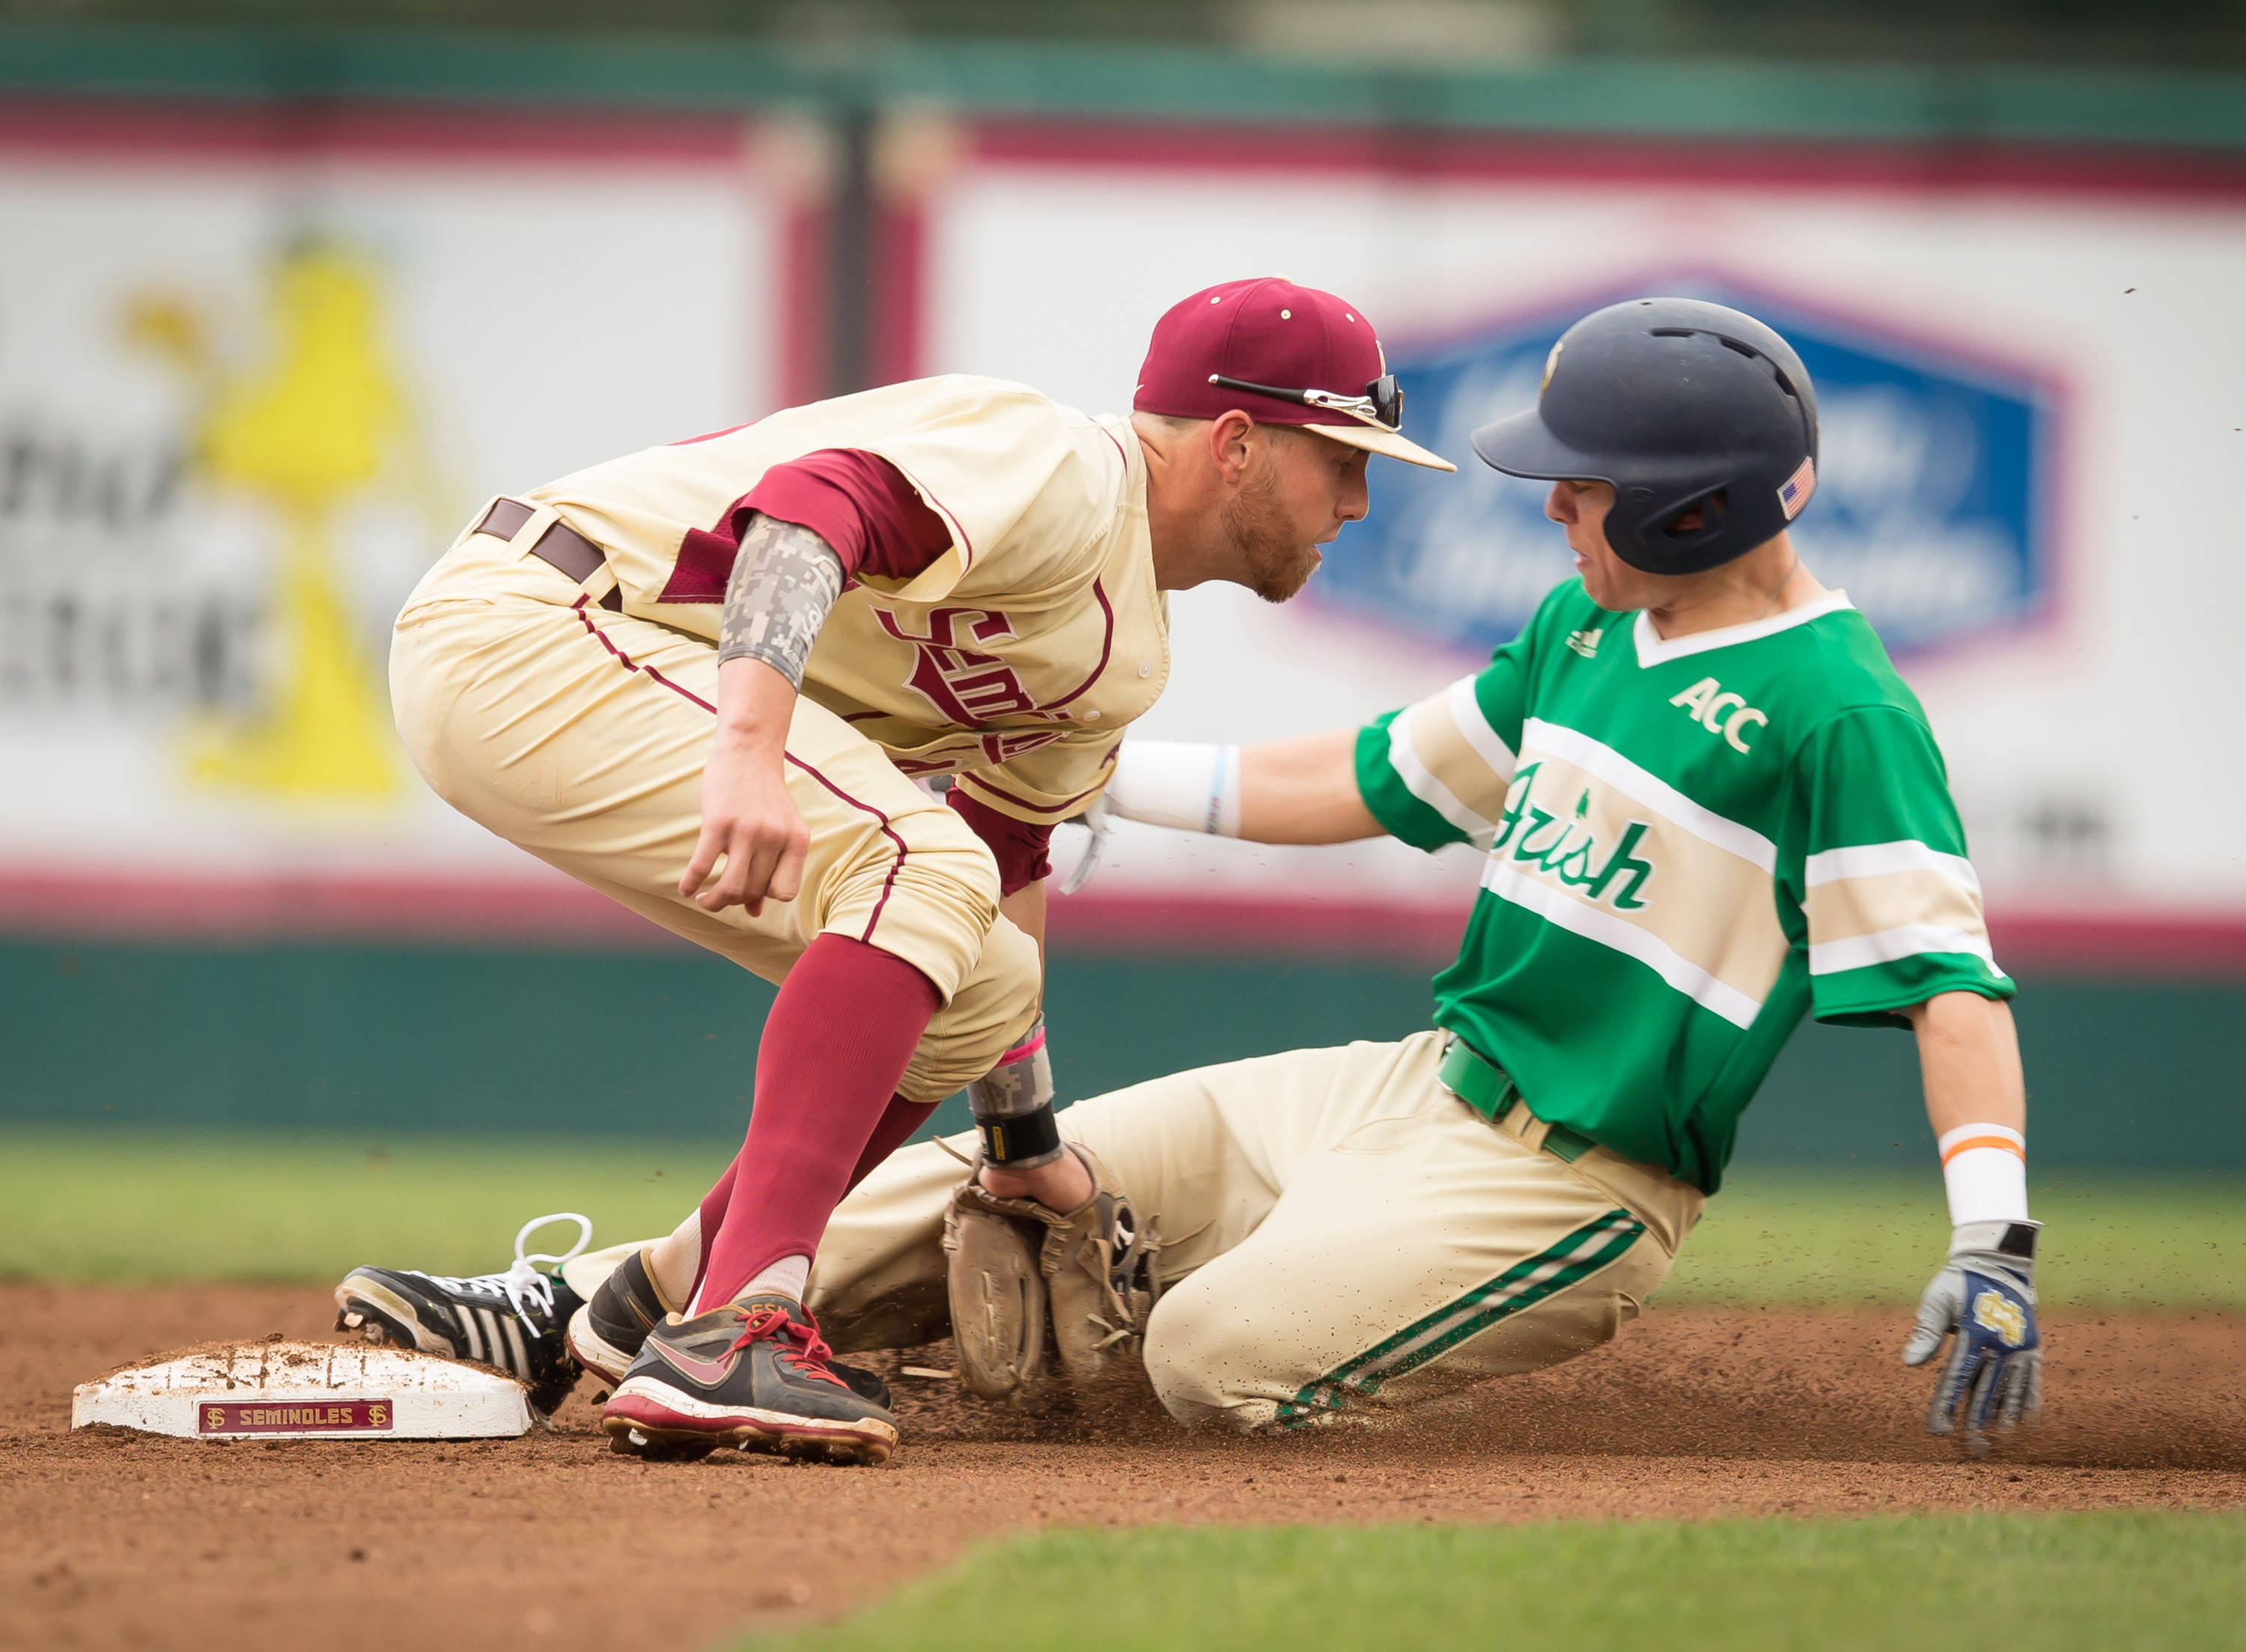 Casey Smit (43) tags out an Irish runner attempting to steal second.